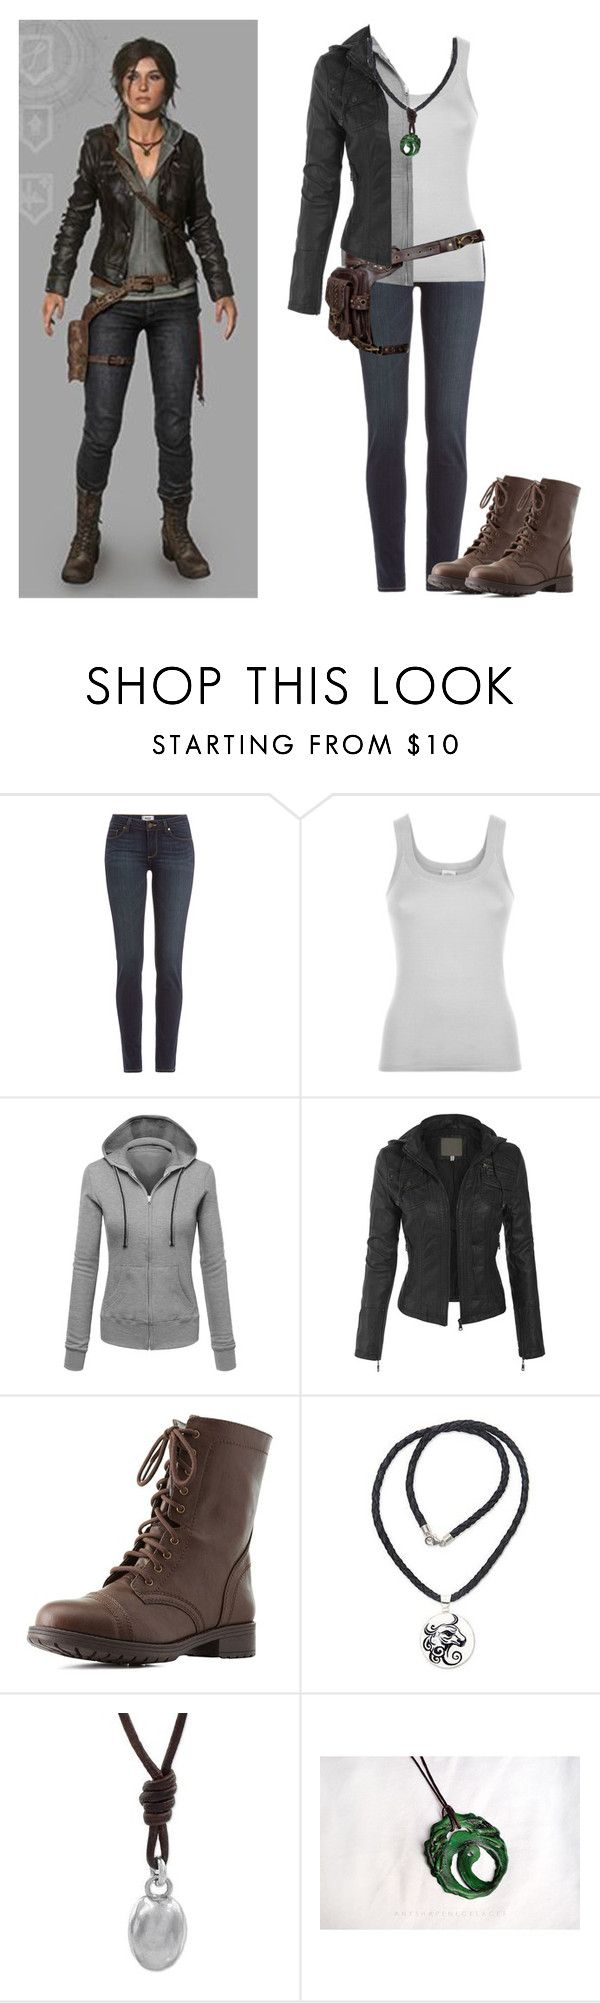 """Lara Croft [Rise of the Tomb Raider]"" by musiclover55 ❤ liked on Polyvore featuring Paige Denim, Holster, Charlotte Russe and NOVICA"